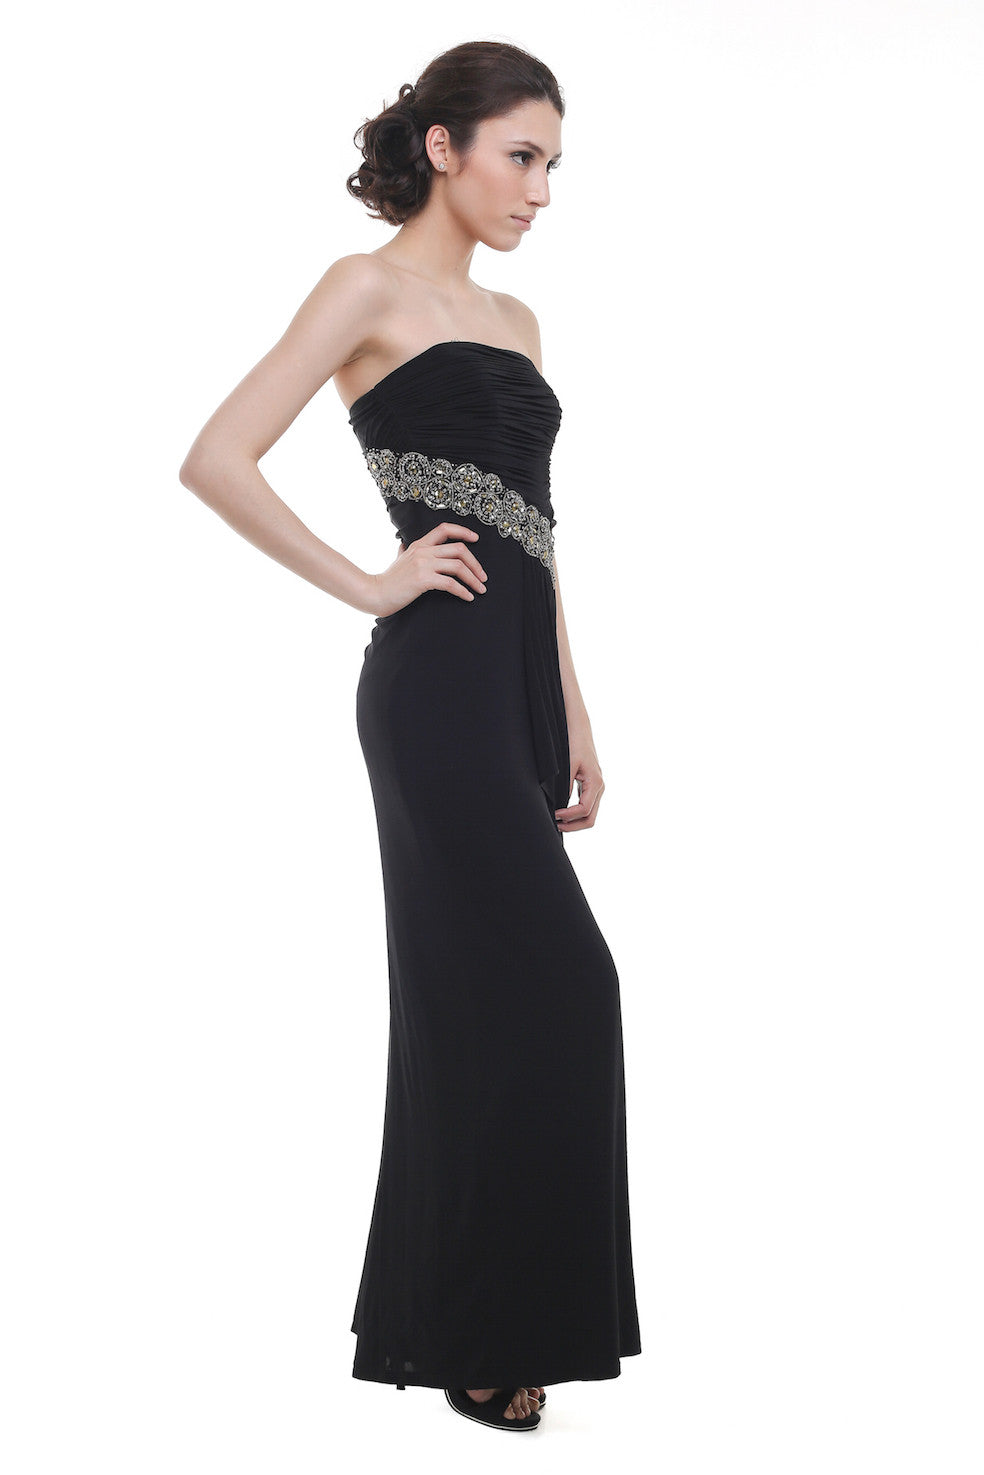 BCBGMaxazria - Buy: Strapless Beaded Black Chiffon Dress-The Dresscodes - 1